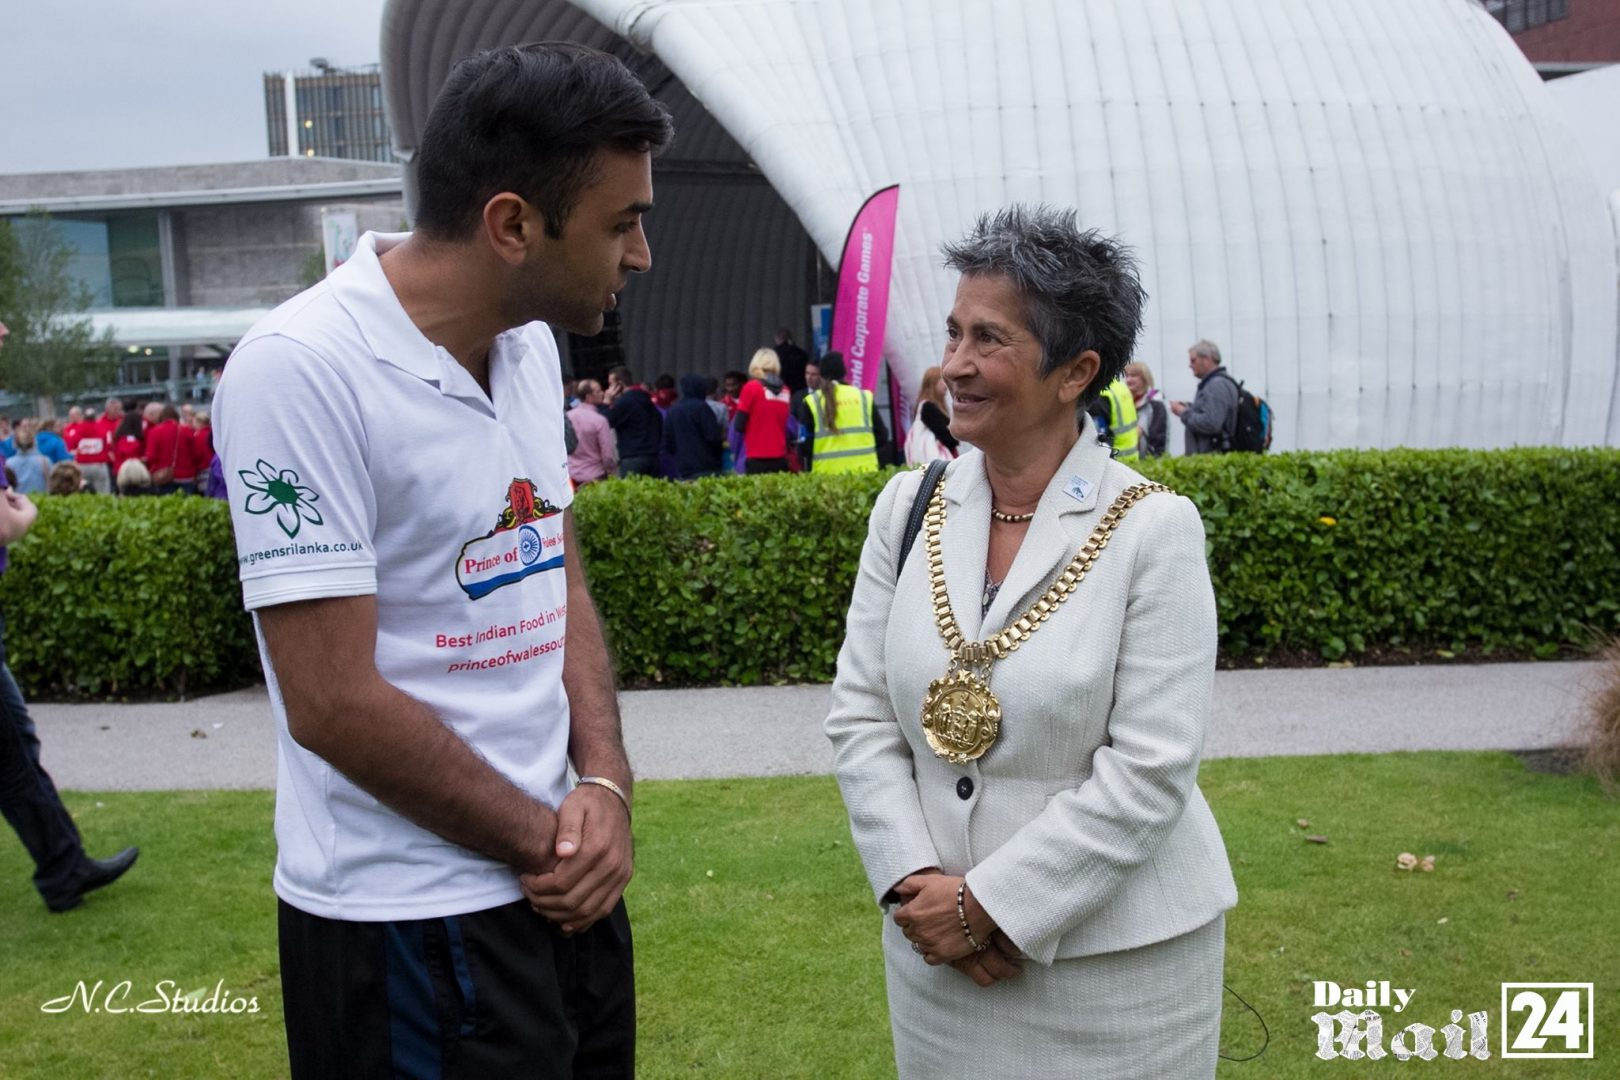 World corporate games hosted by Kiran Rai and met super bowl president and Lord Mayor of Liverpool